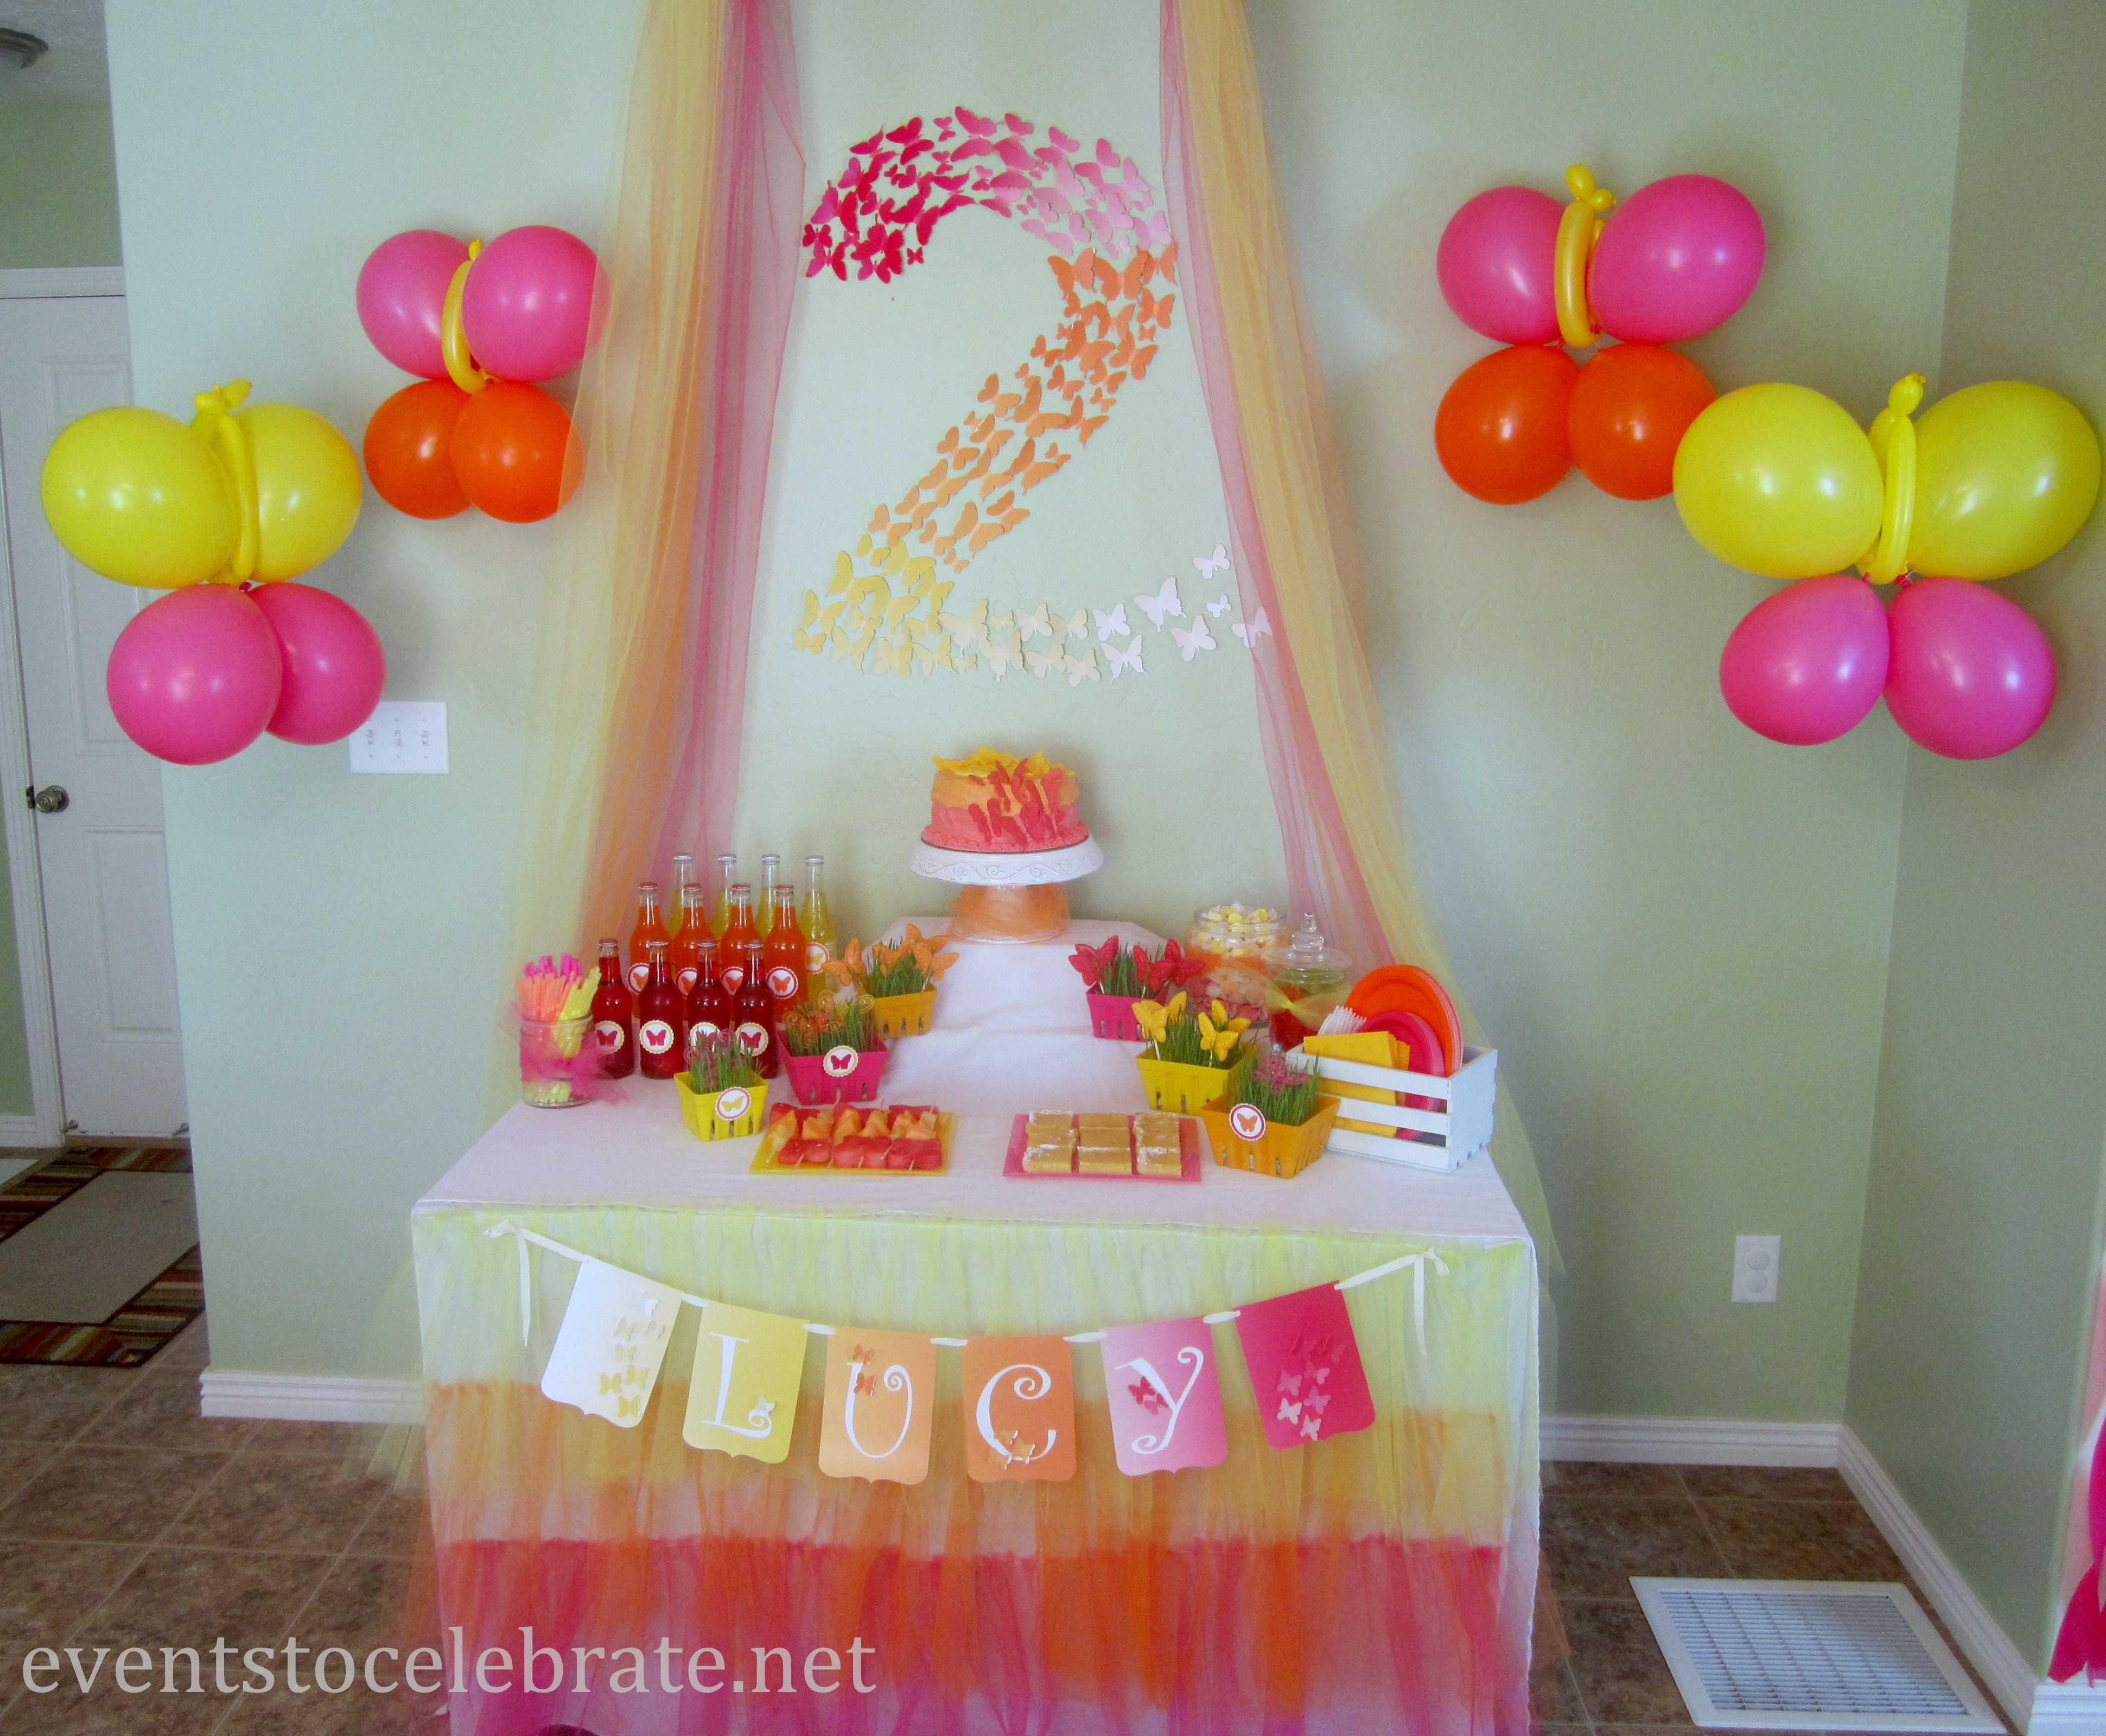 Best ideas about Butterfly Birthday Decor . Save or Pin Butterfly Themed Birthday Party Food & Desserts events Now.